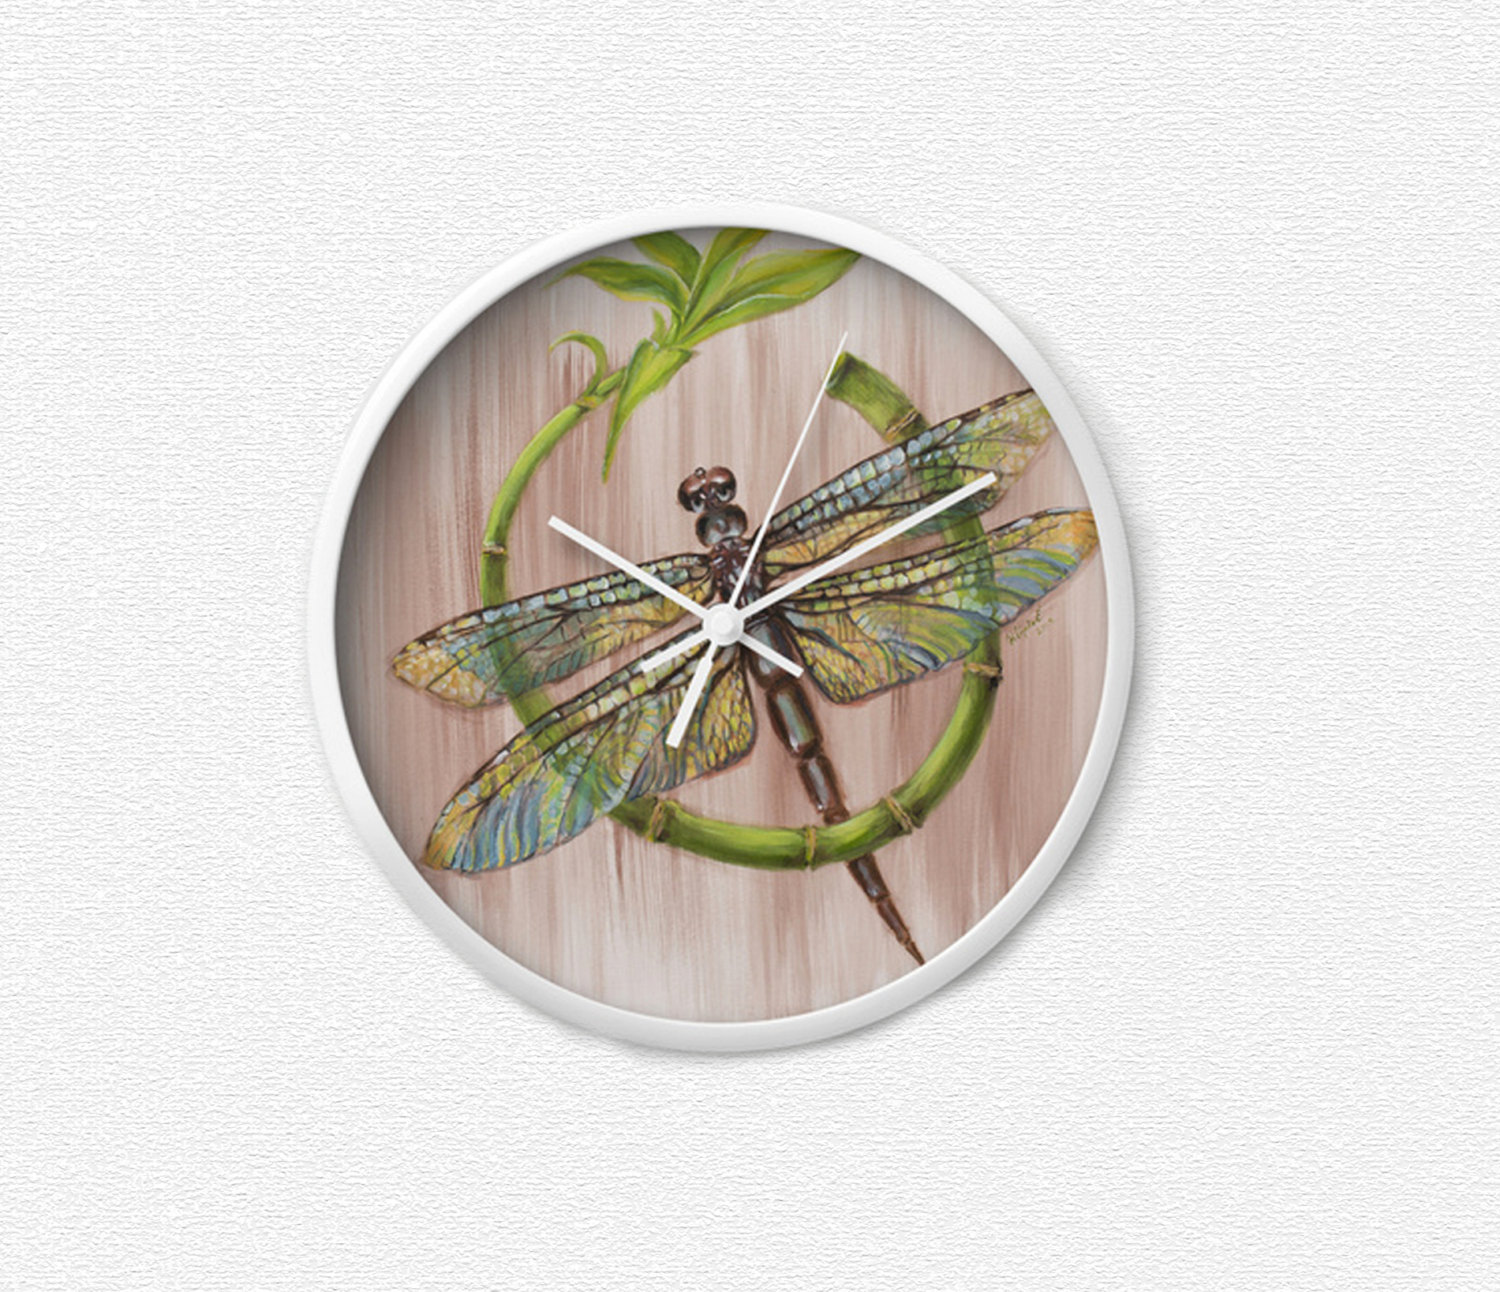 Wall Clock Design Photo : Creative and handmade wall clock designs style motivation